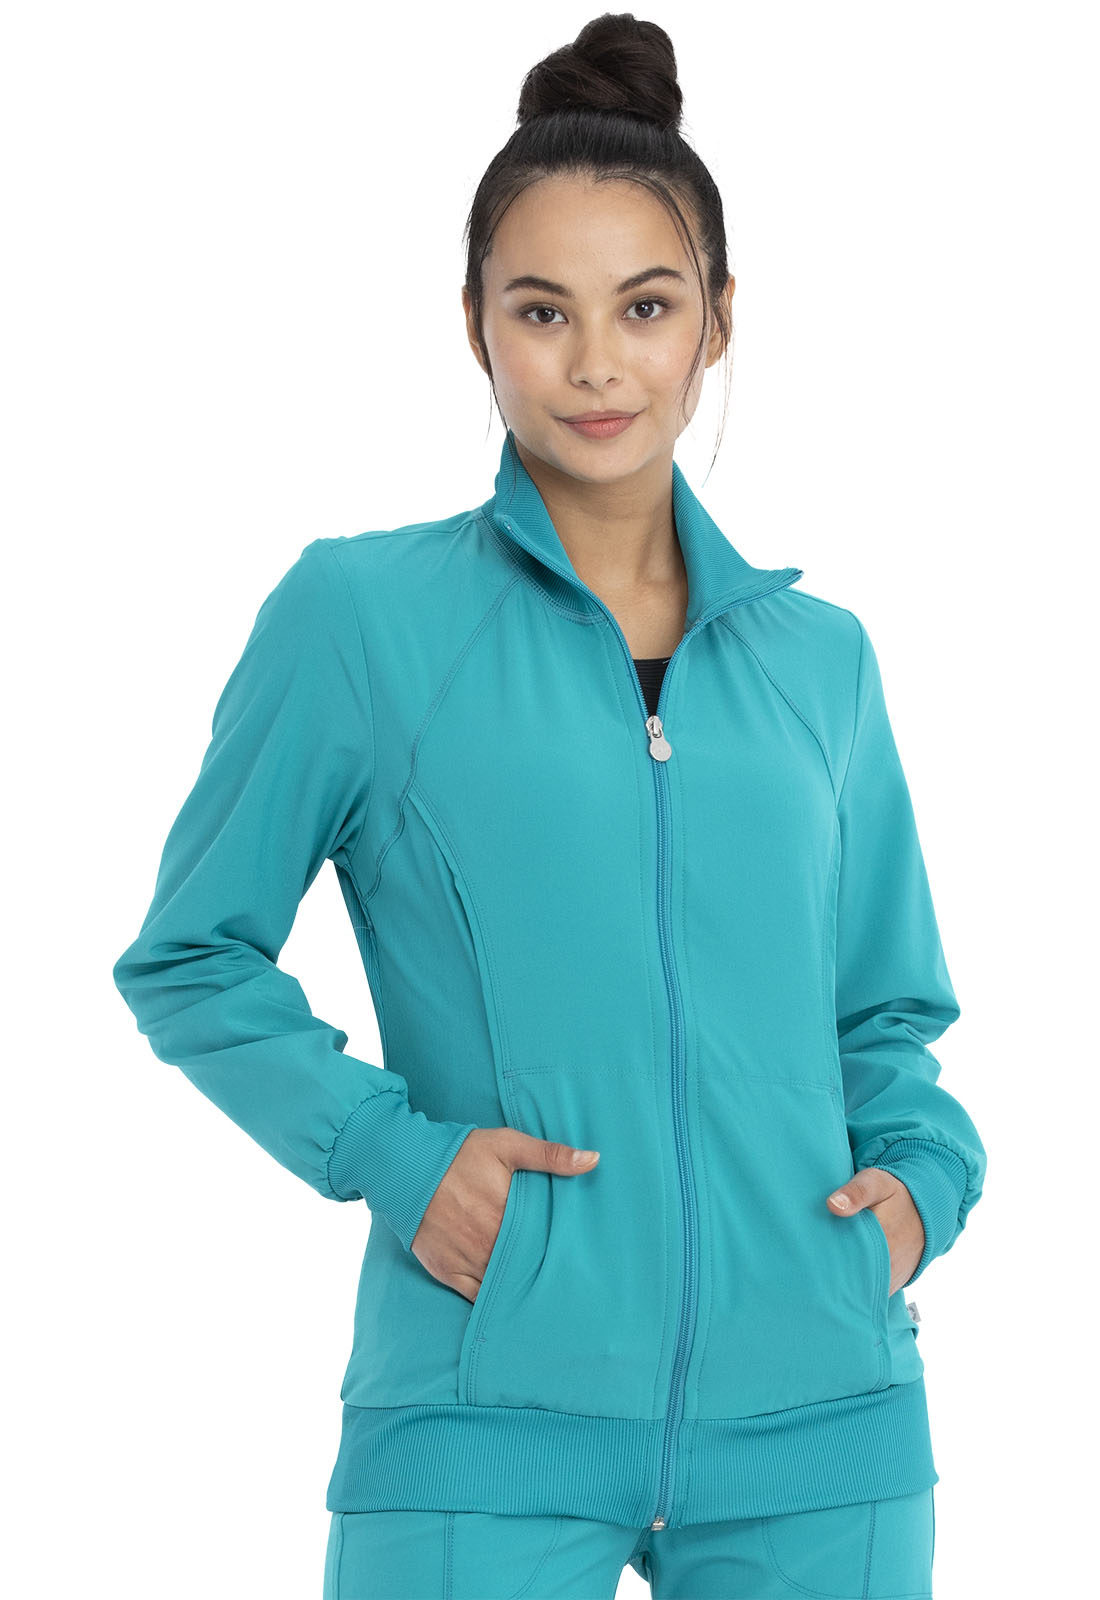 01b07bae251 Infinity Zip Front Warm-Up Jacket in Teal Blue 2391A-TLPS from ...